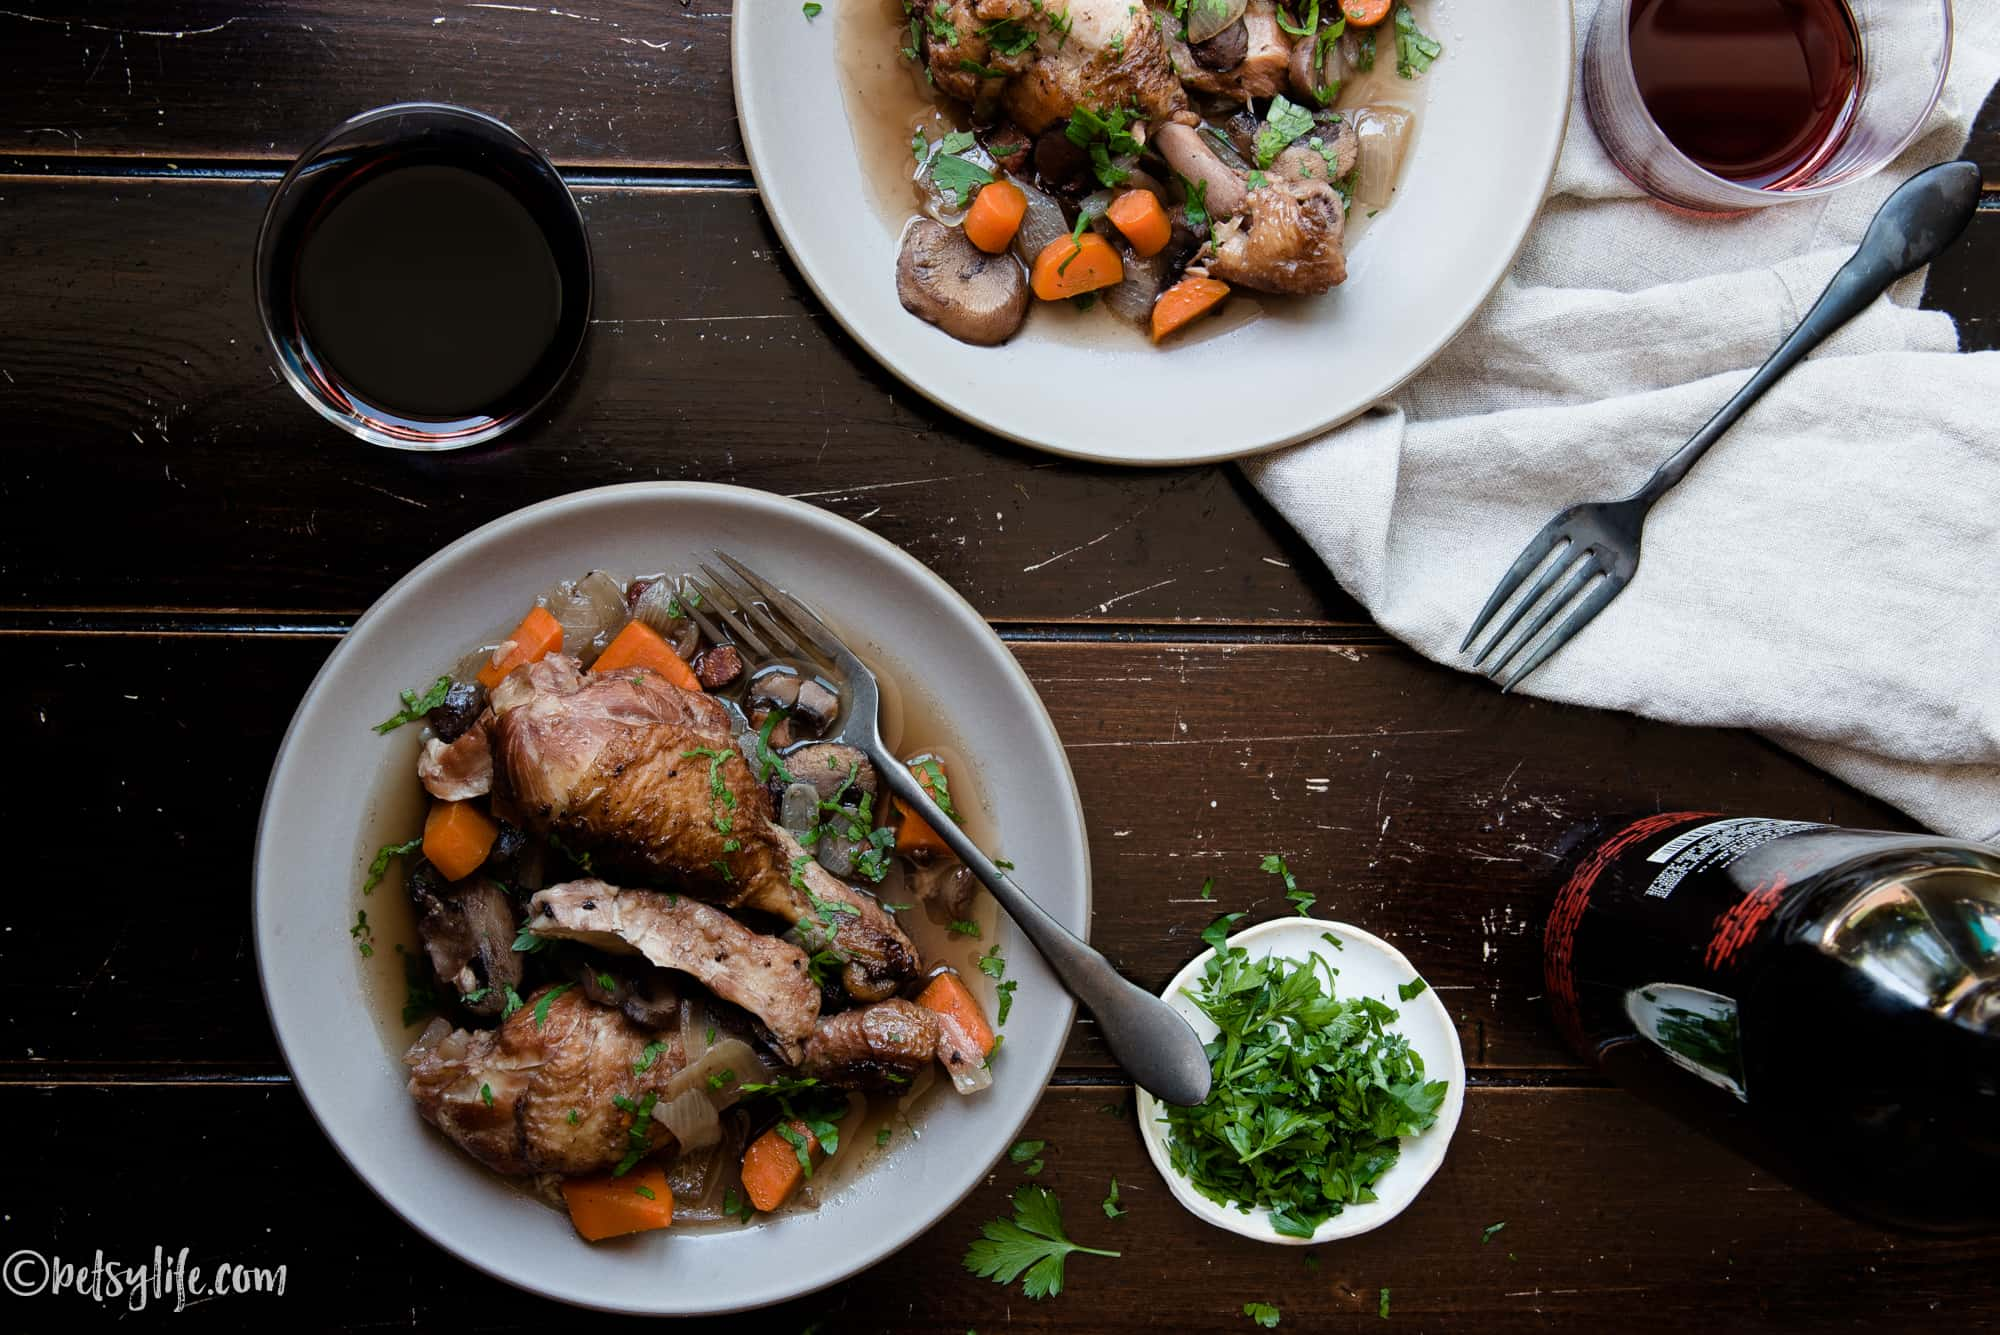 Two plates of coq au vin next to wine bottle and two glasses